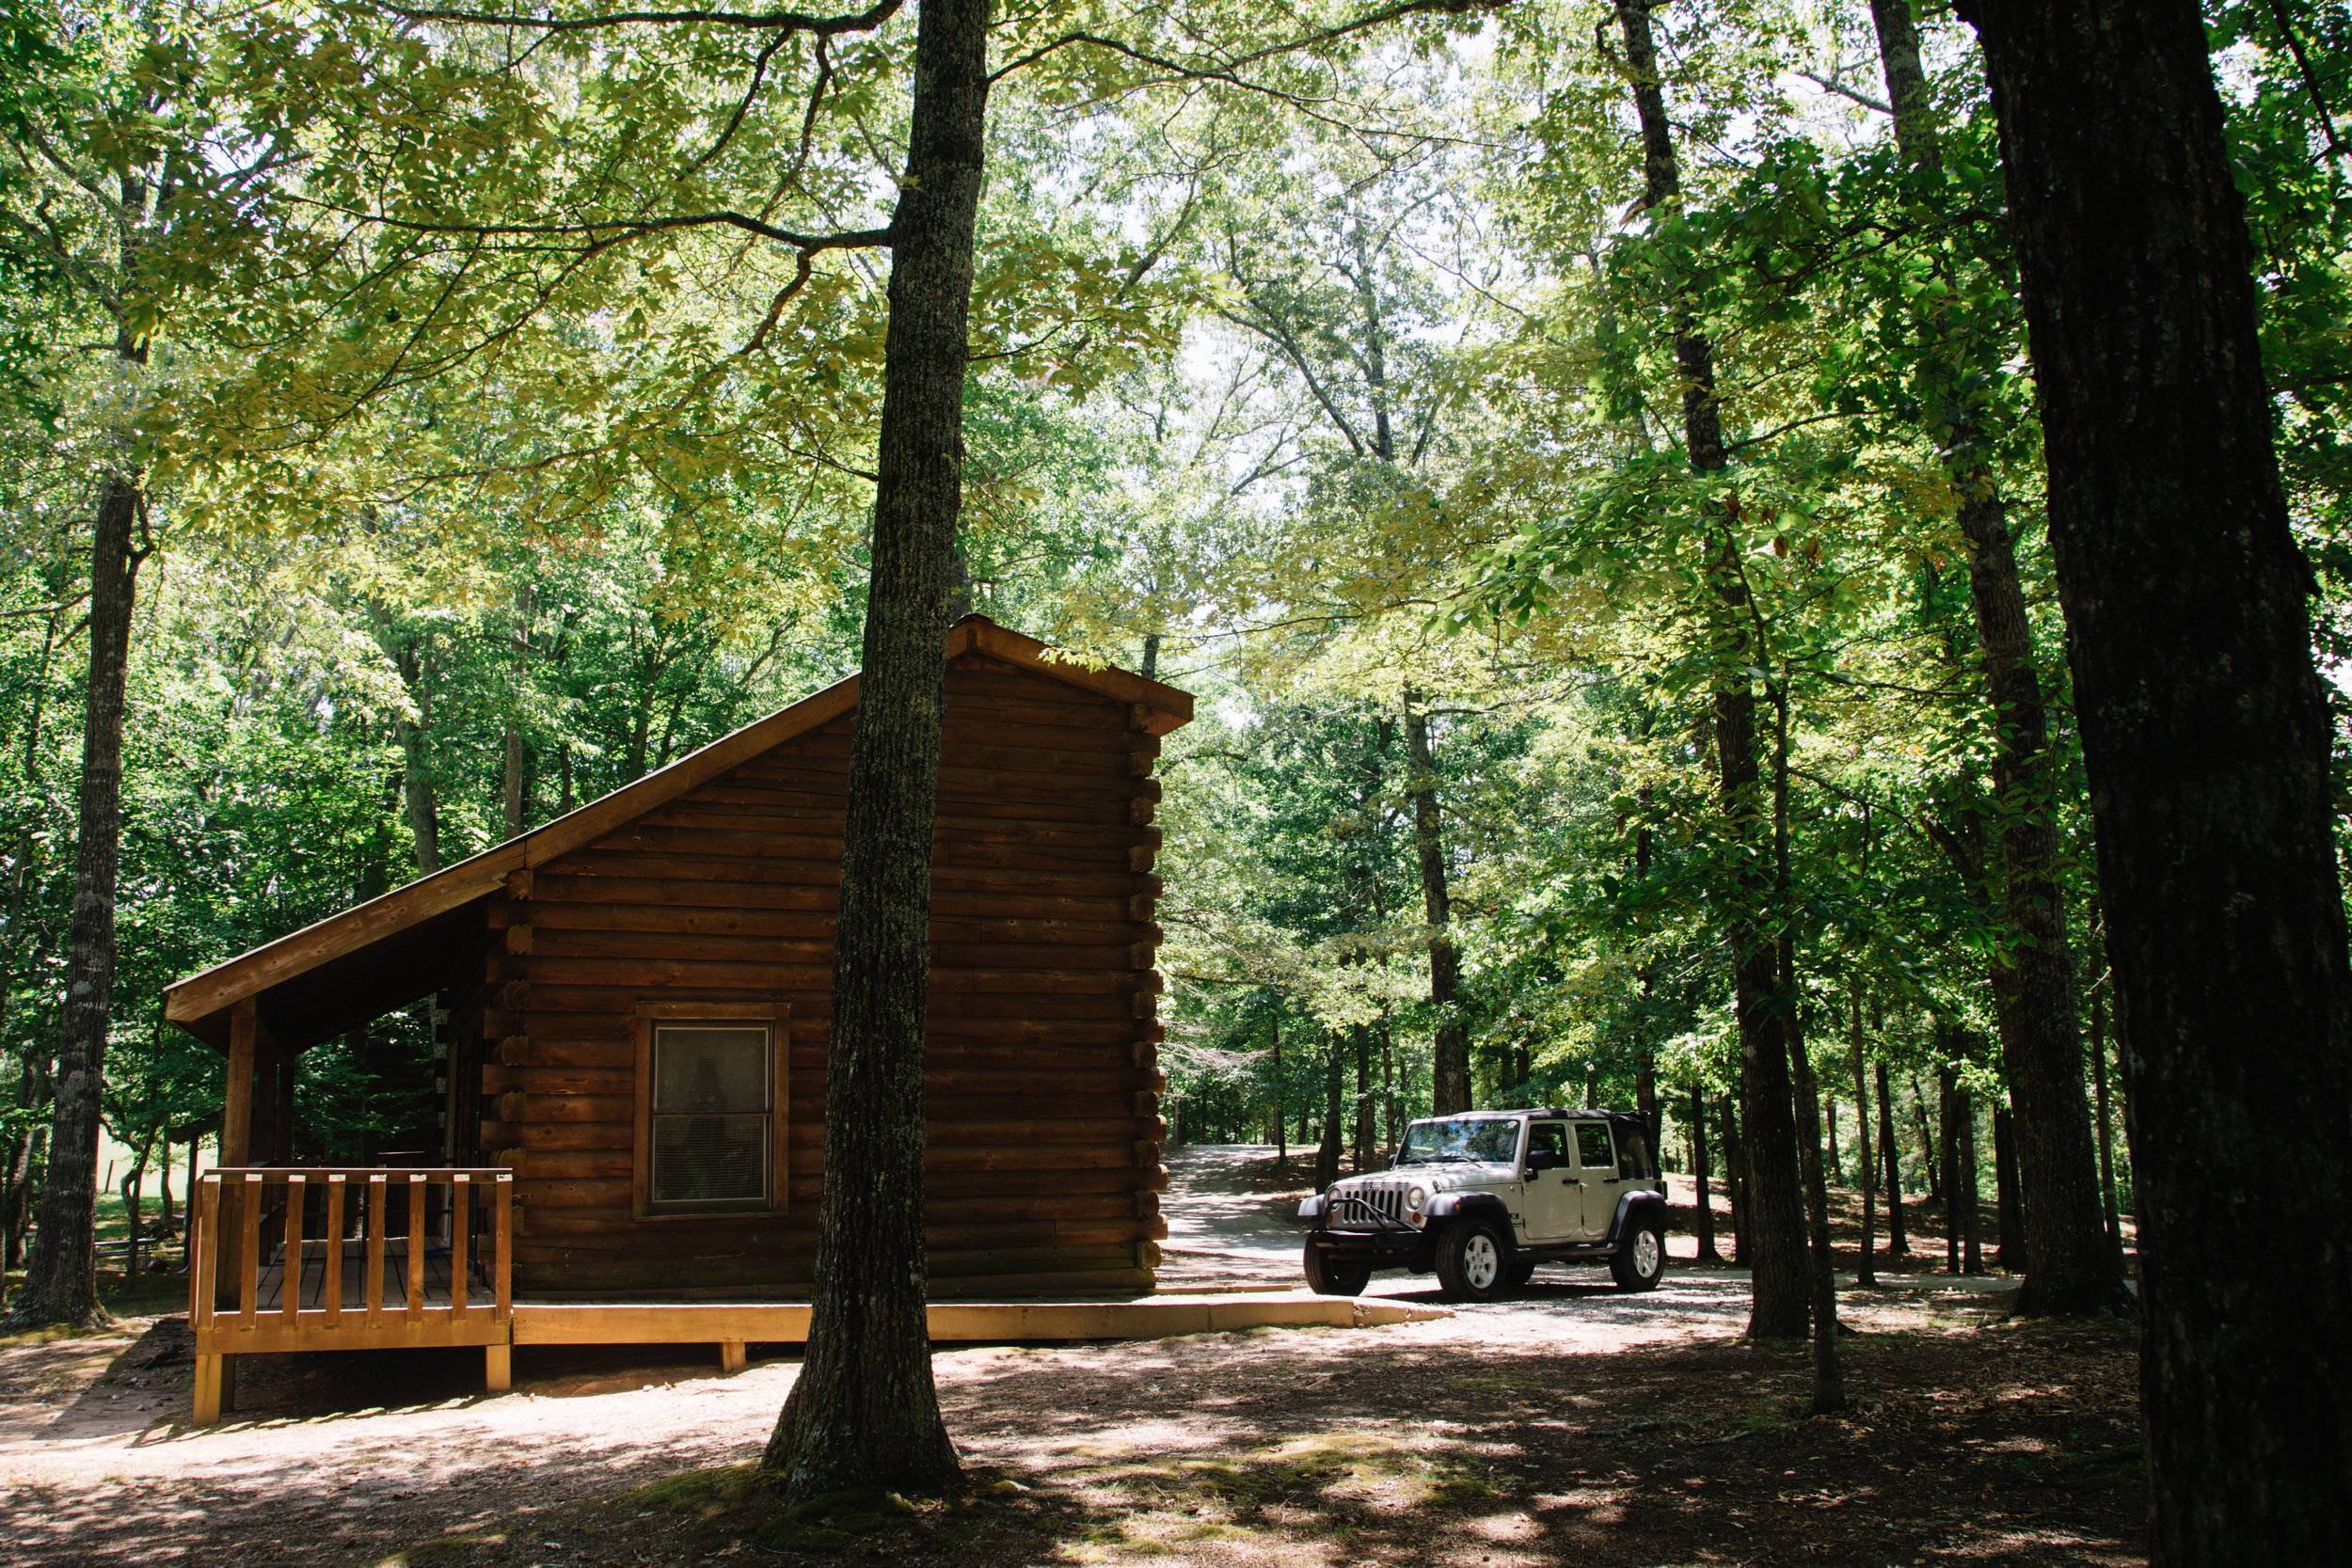 R Ranch in the Mountains has amazing cabins that will fit the whole family.